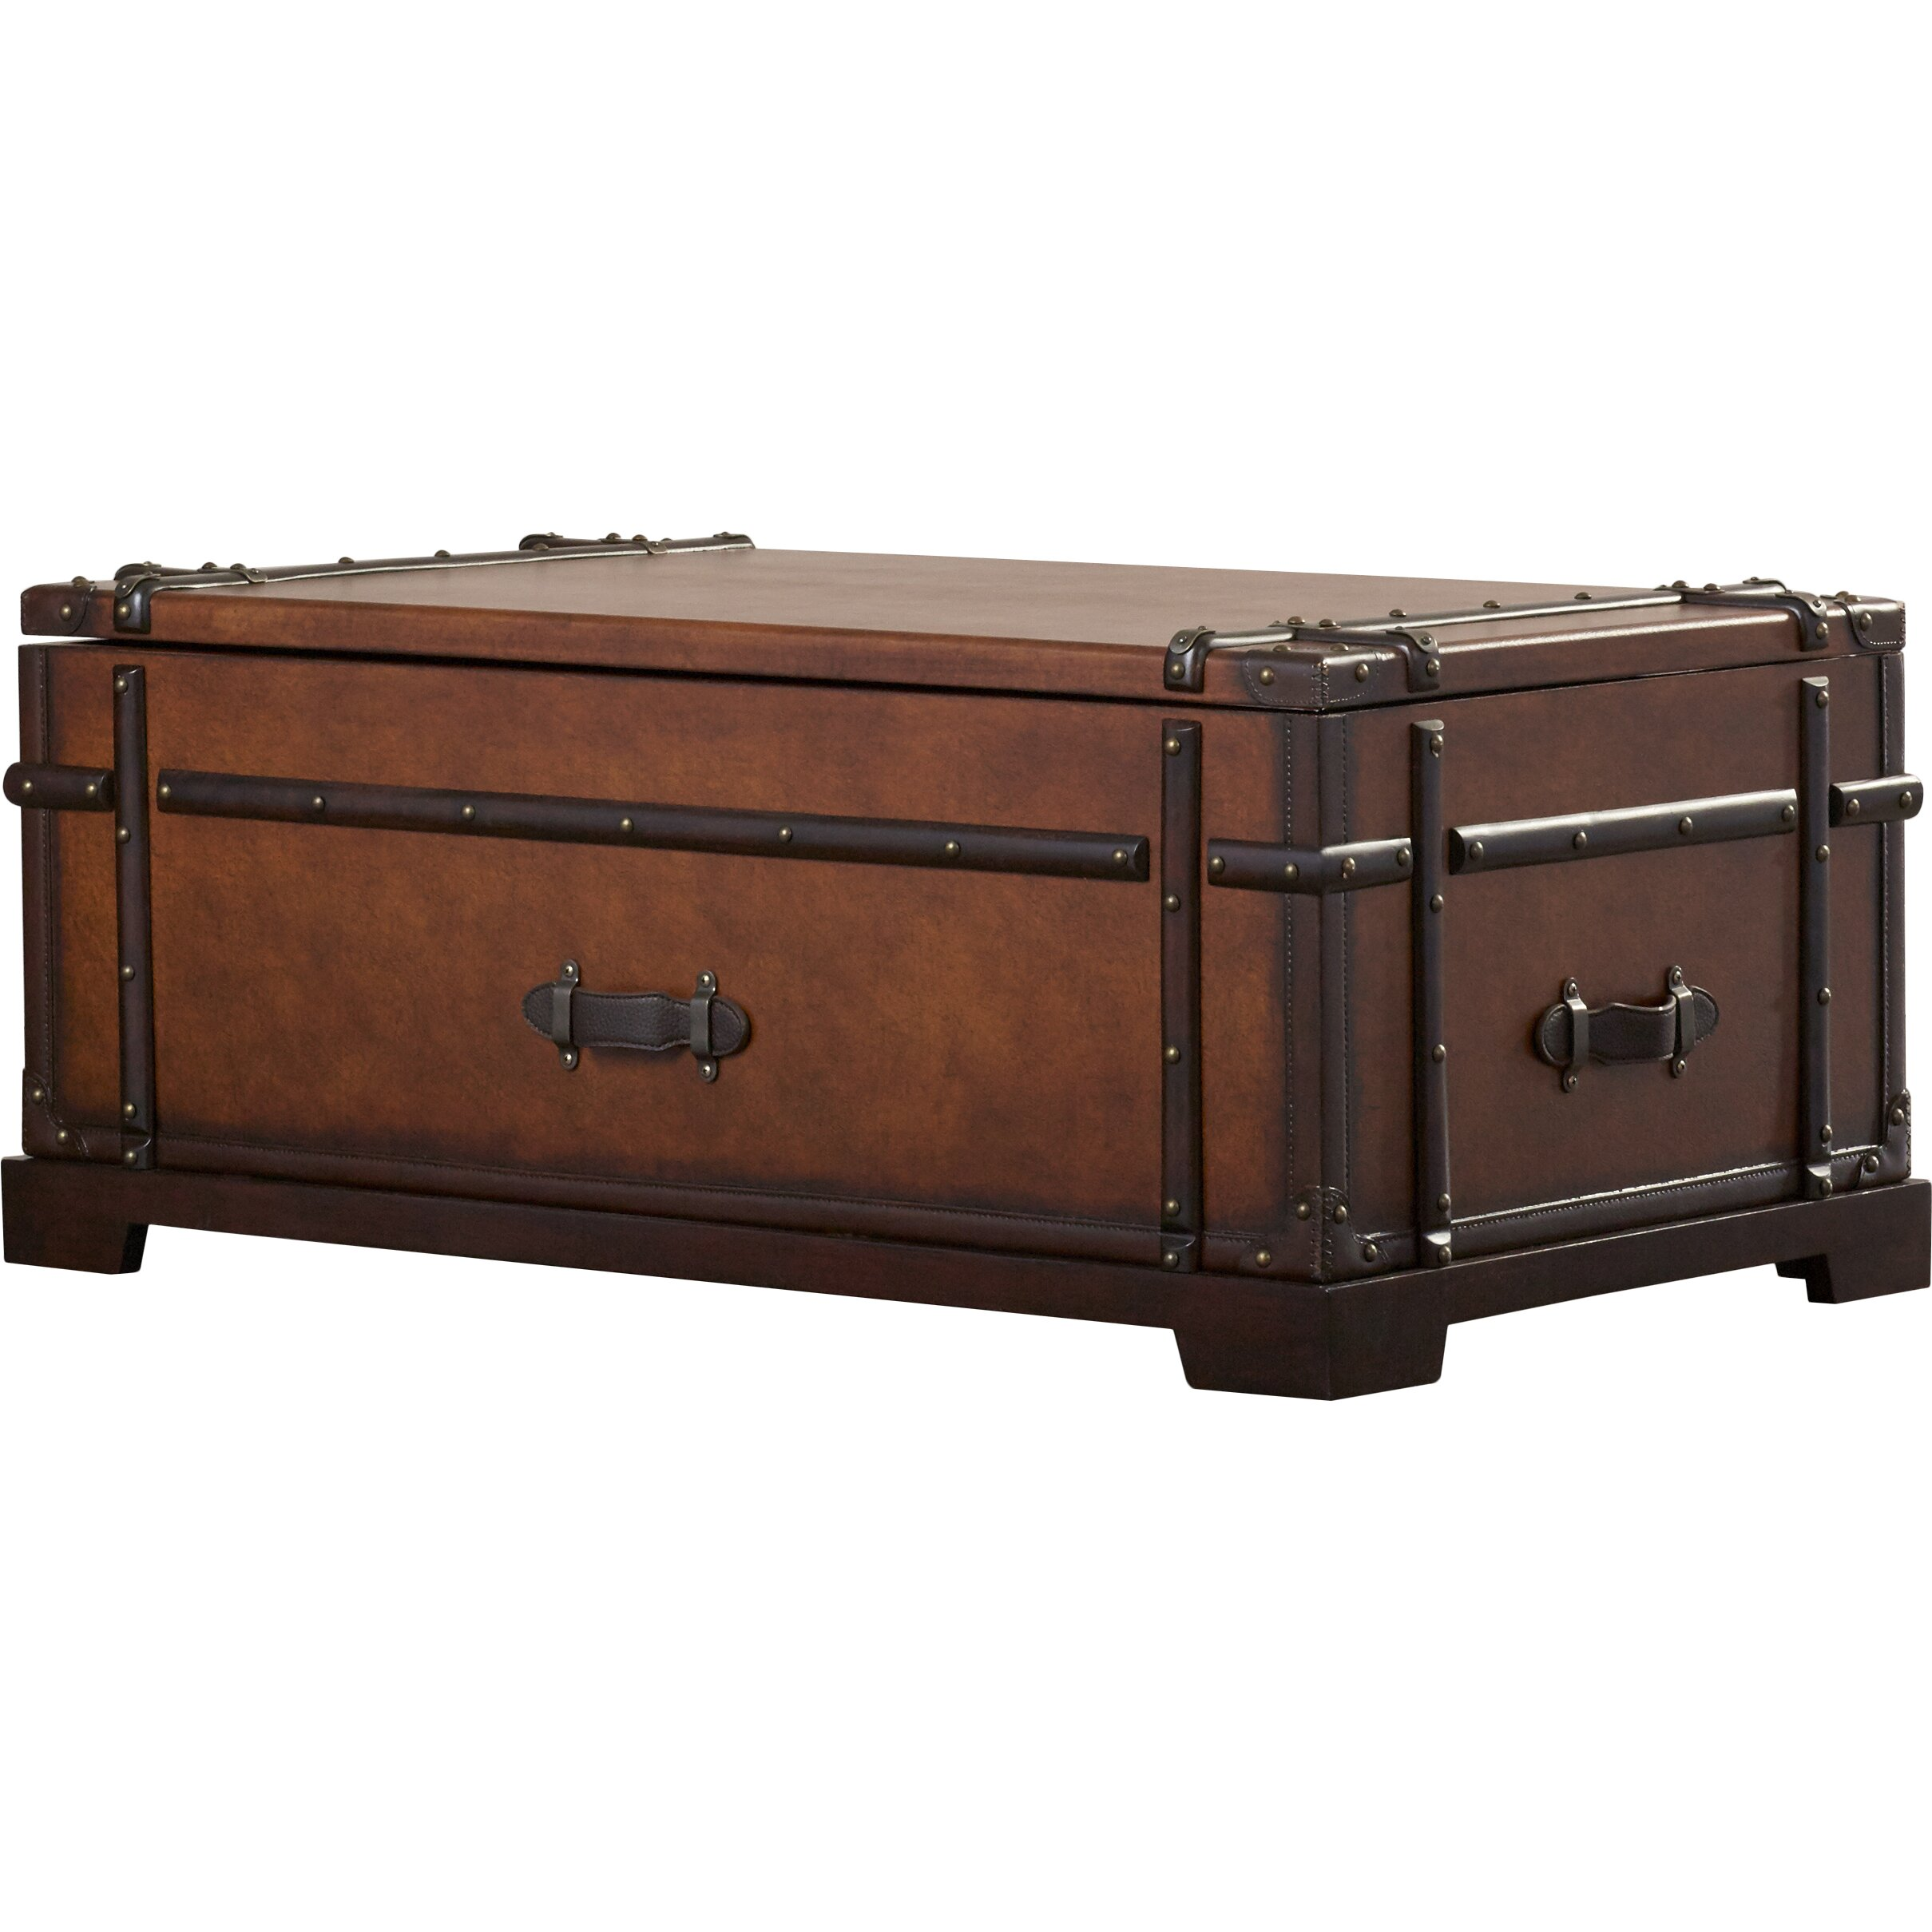 Darby Home Co Delavan Steamer Coffee Table Trunk with Lift  : Darby Home Co Delavan Steamer Coffee Table Trunk with Lift Top DBHC5019 from www.wayfair.com size 2419 x 2419 jpeg 554kB